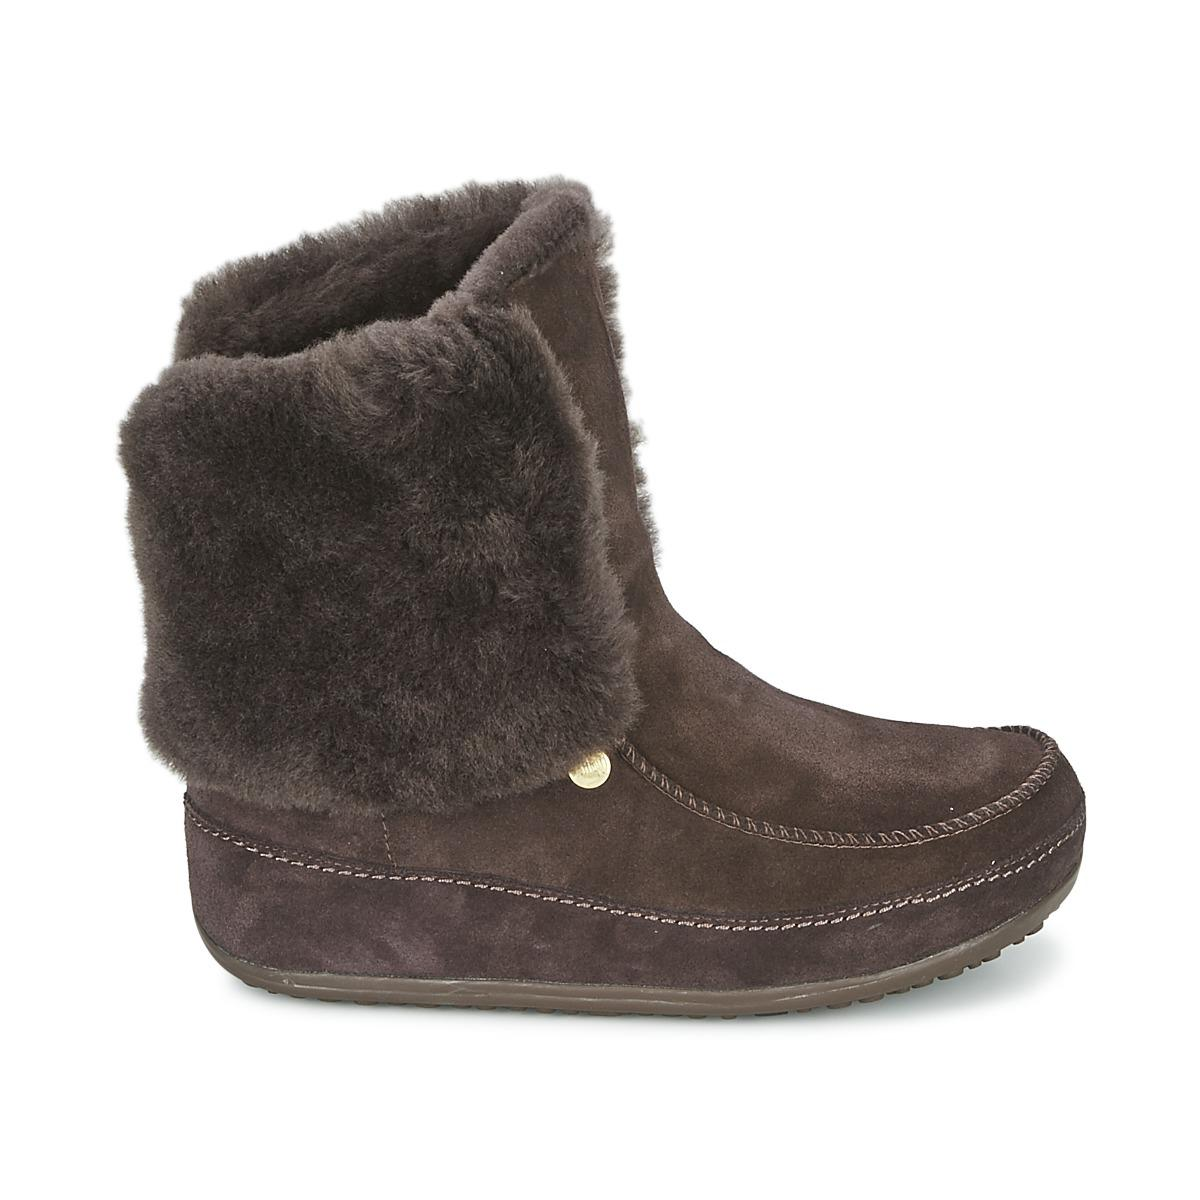 906c71212b018f Fitflop - Mukluk Moctm Cuff Women s Low Ankle Boots In Brown - Lyst. View  fullscreen